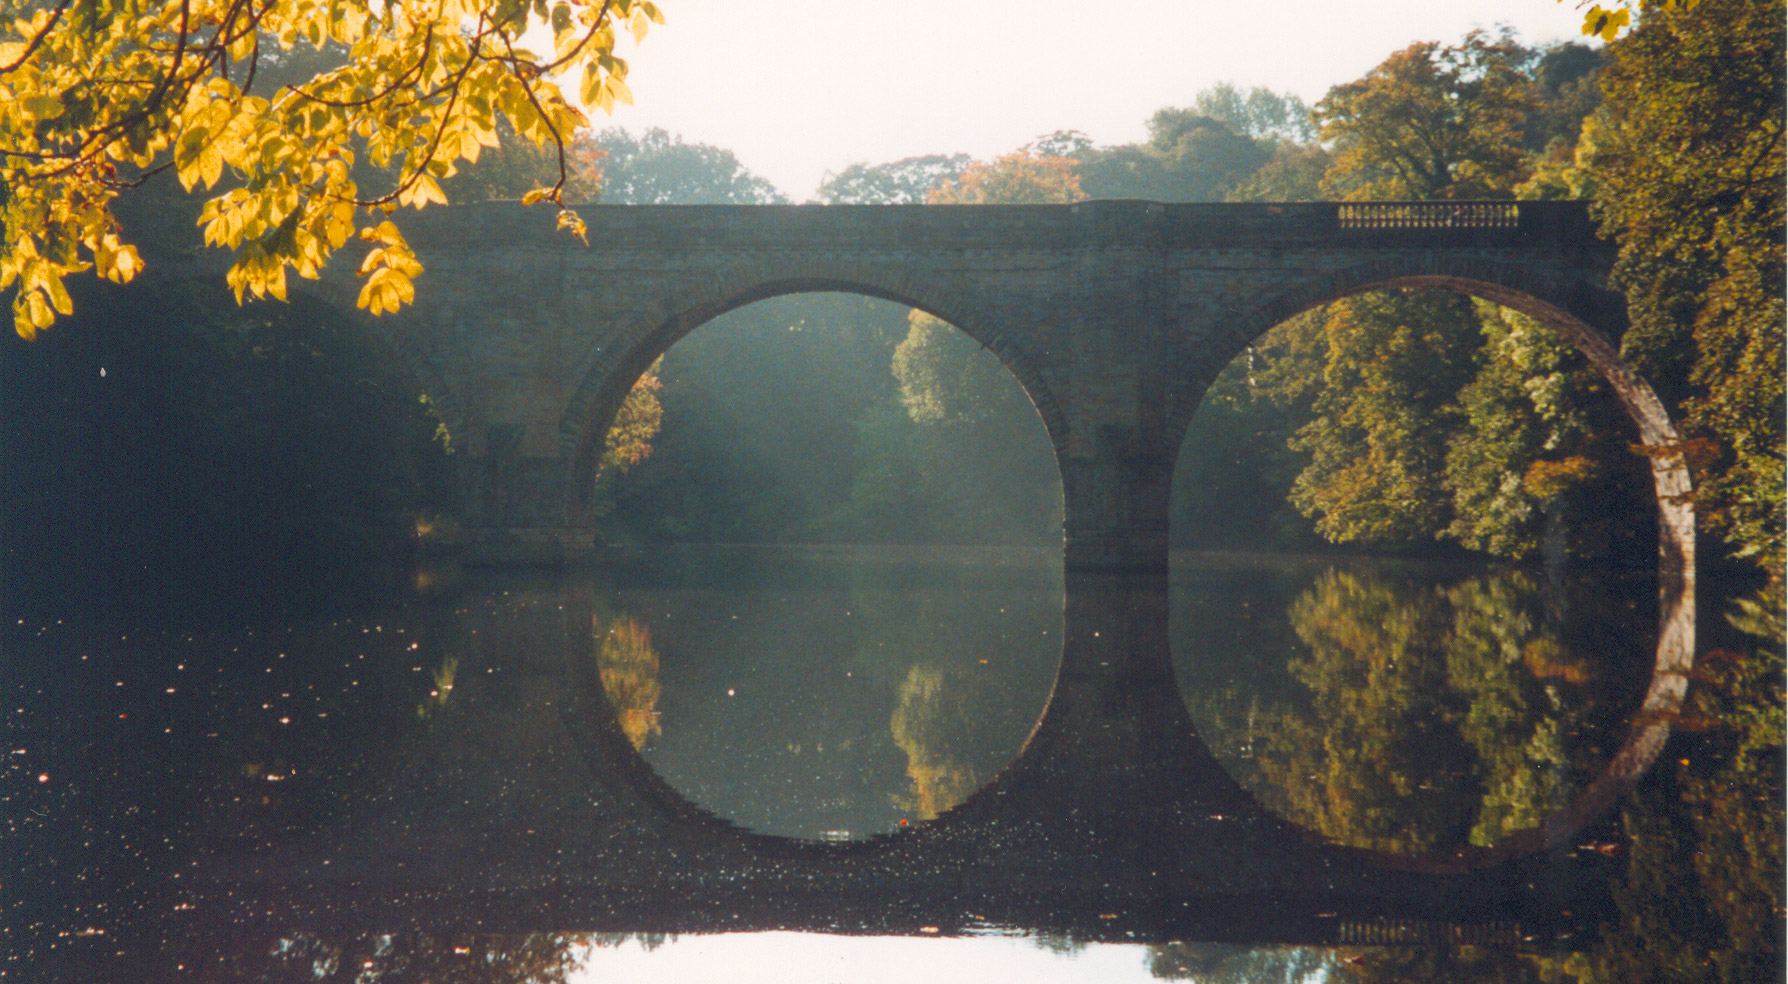 Prebends' Bridge reflected in the River Wear with autumnal trees